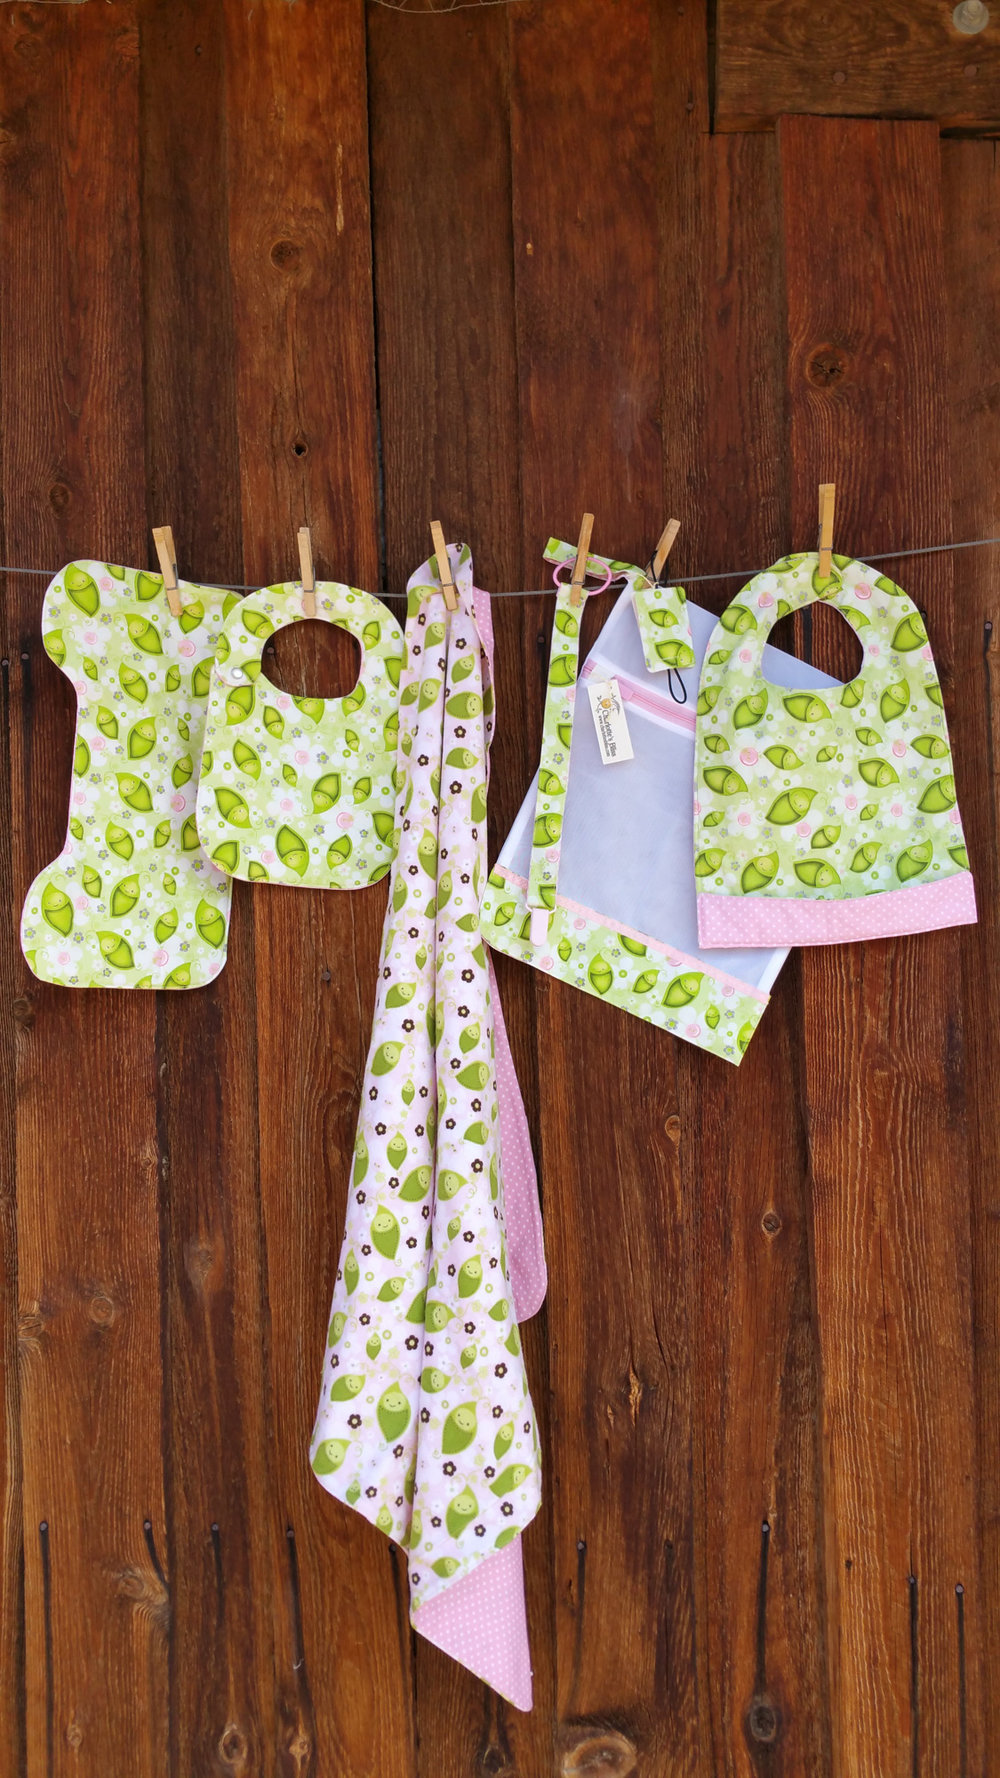 HUGHES cathie - misc baby items - green.jpg